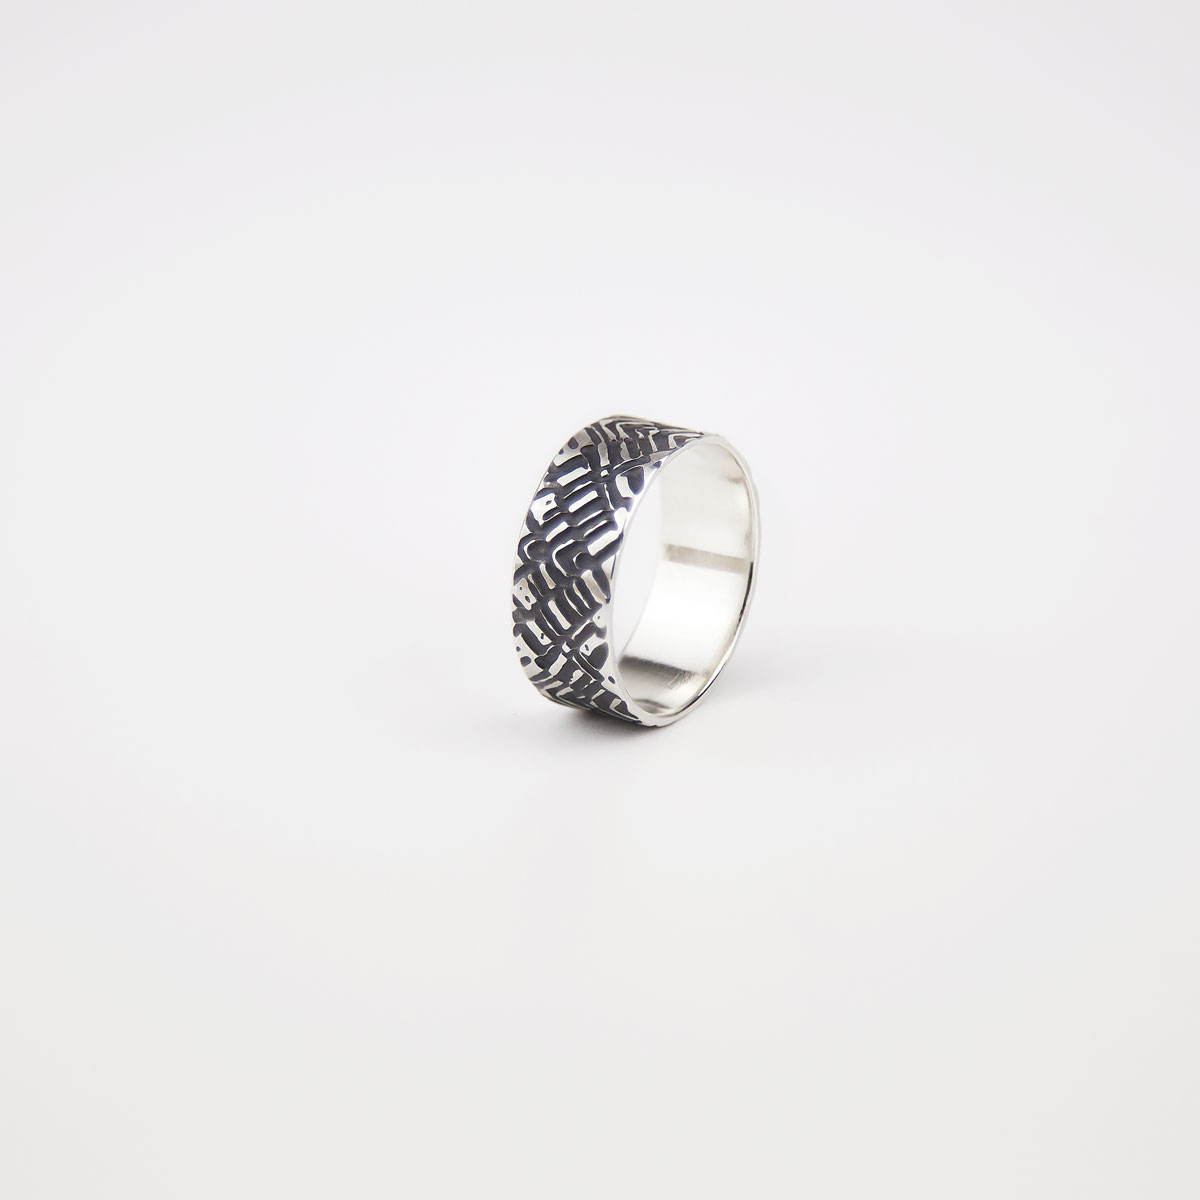 'Weave' Silver and Black Patterned Ring